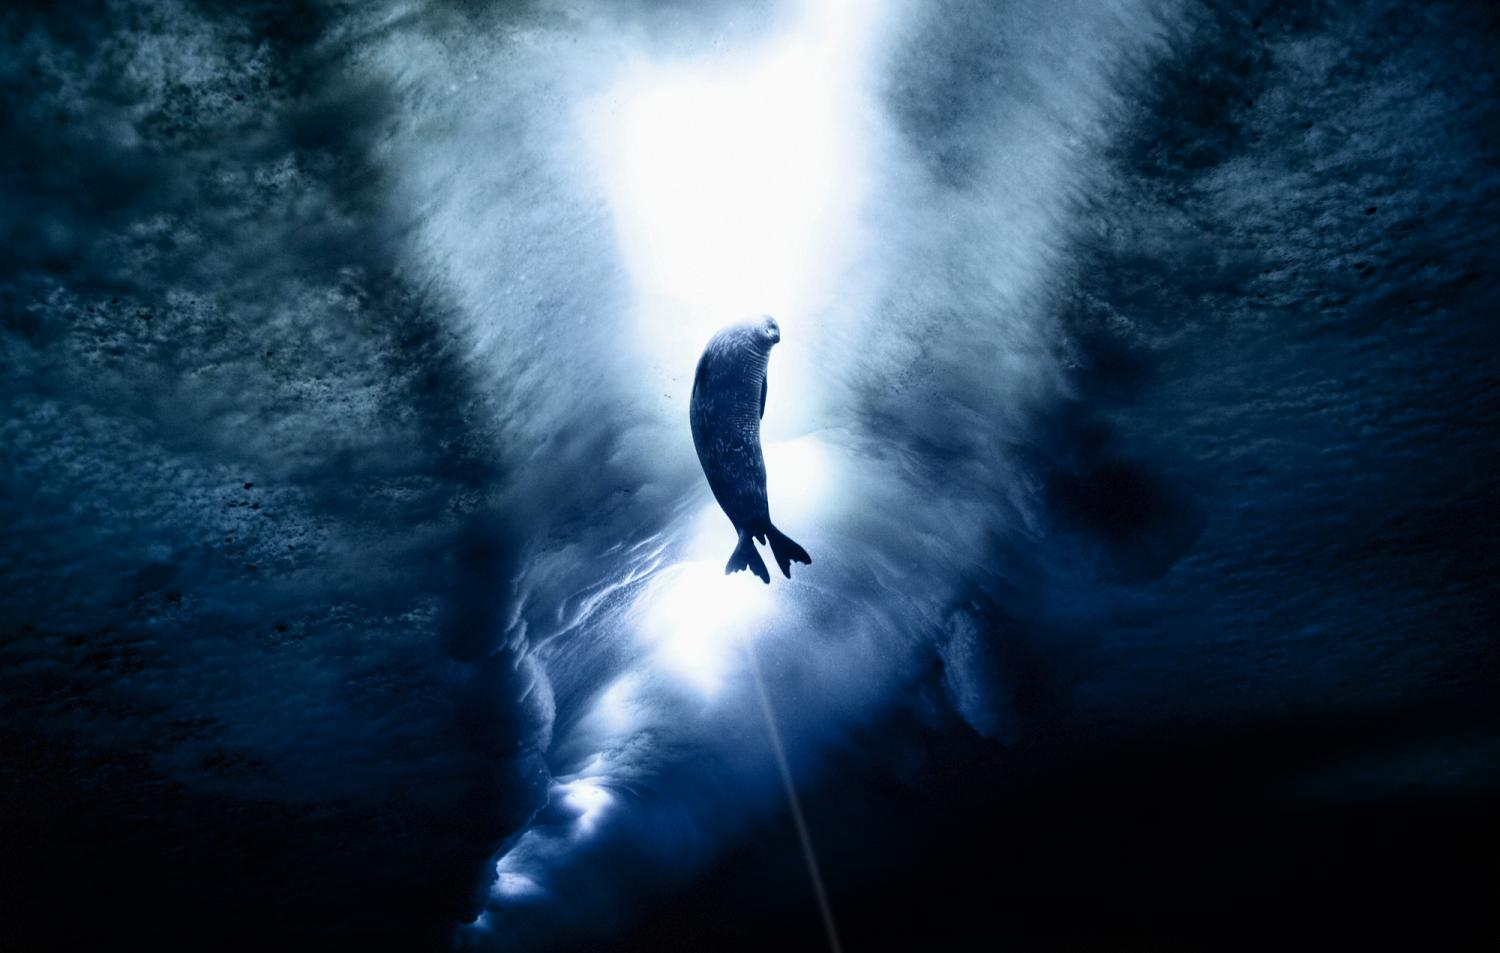 Wedell Seal swimming with sun shining through water.